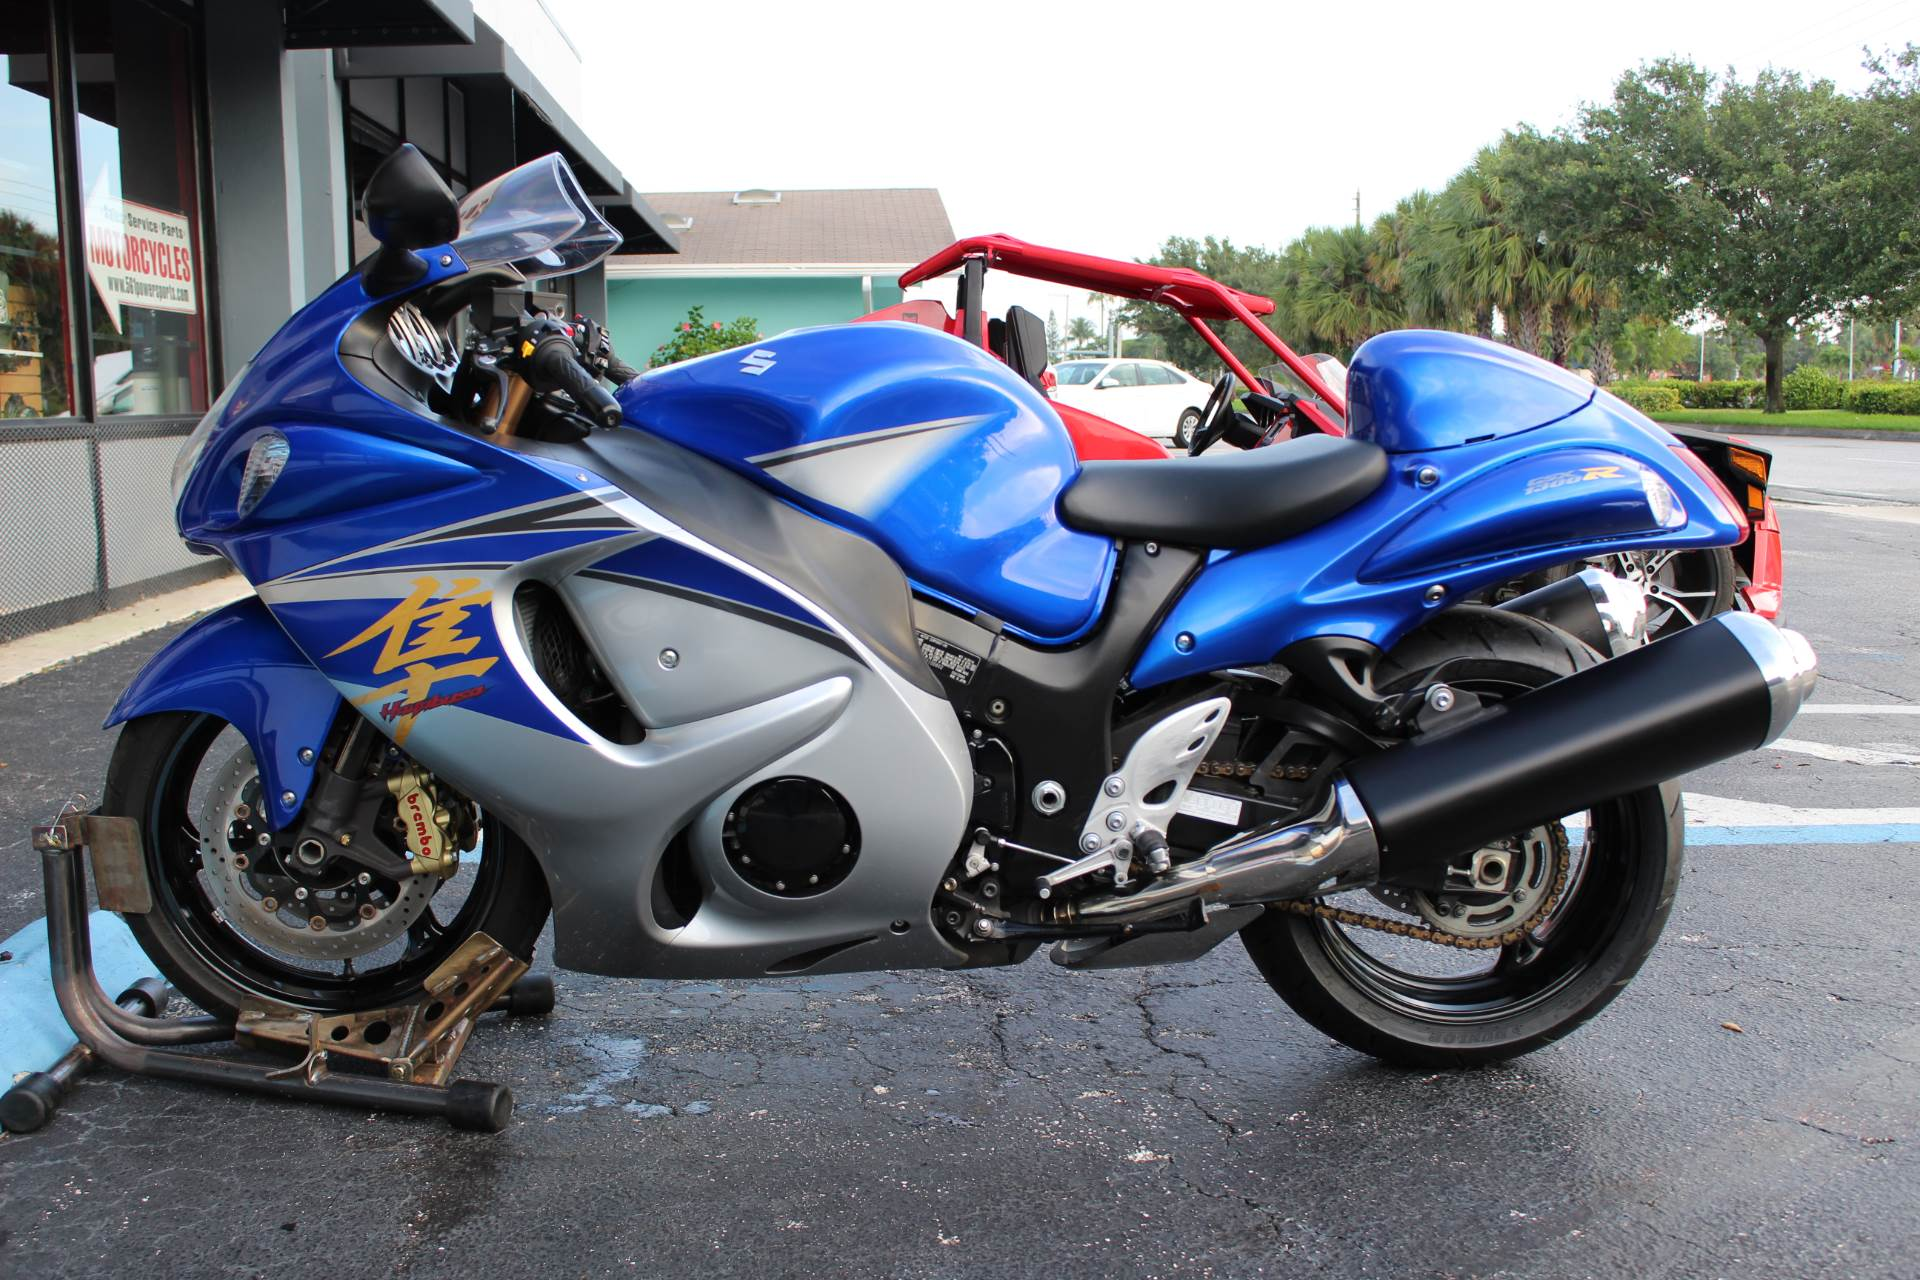 2015 Suzuki Hayabusa for sale 199941